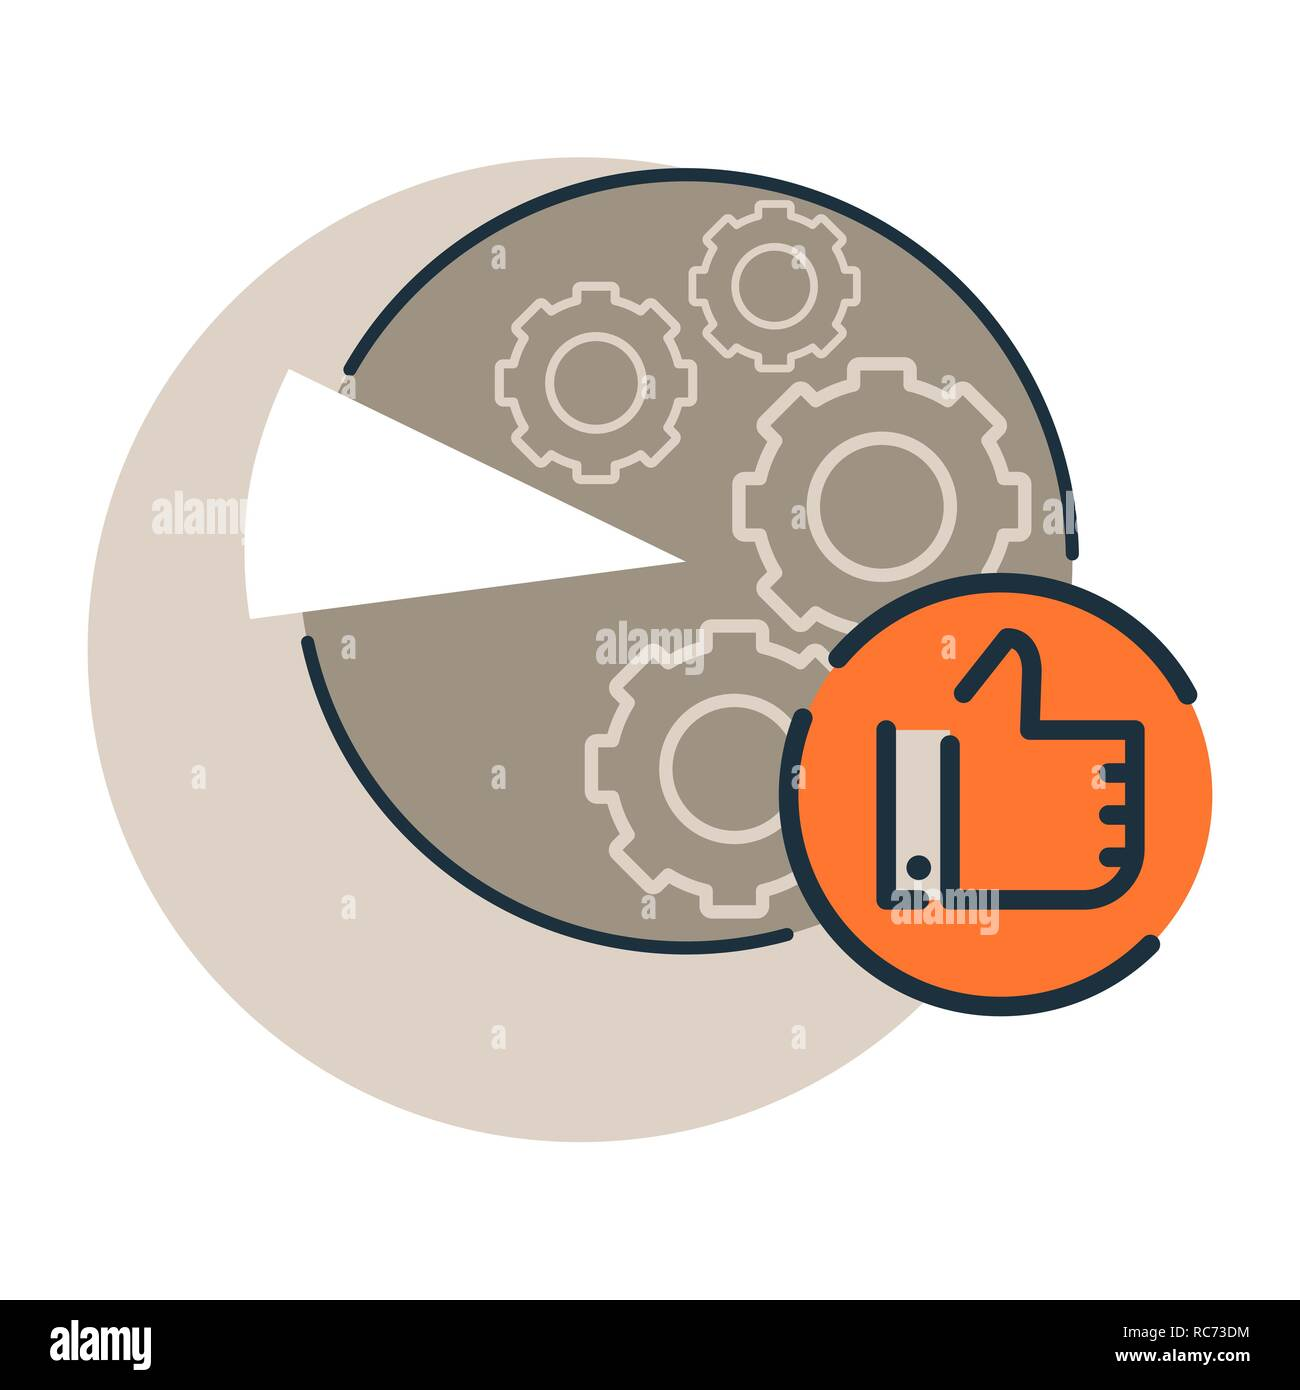 hight resolution of reviews analysis diagramme icon e commerce marketing and smm cervice icon trendy flat